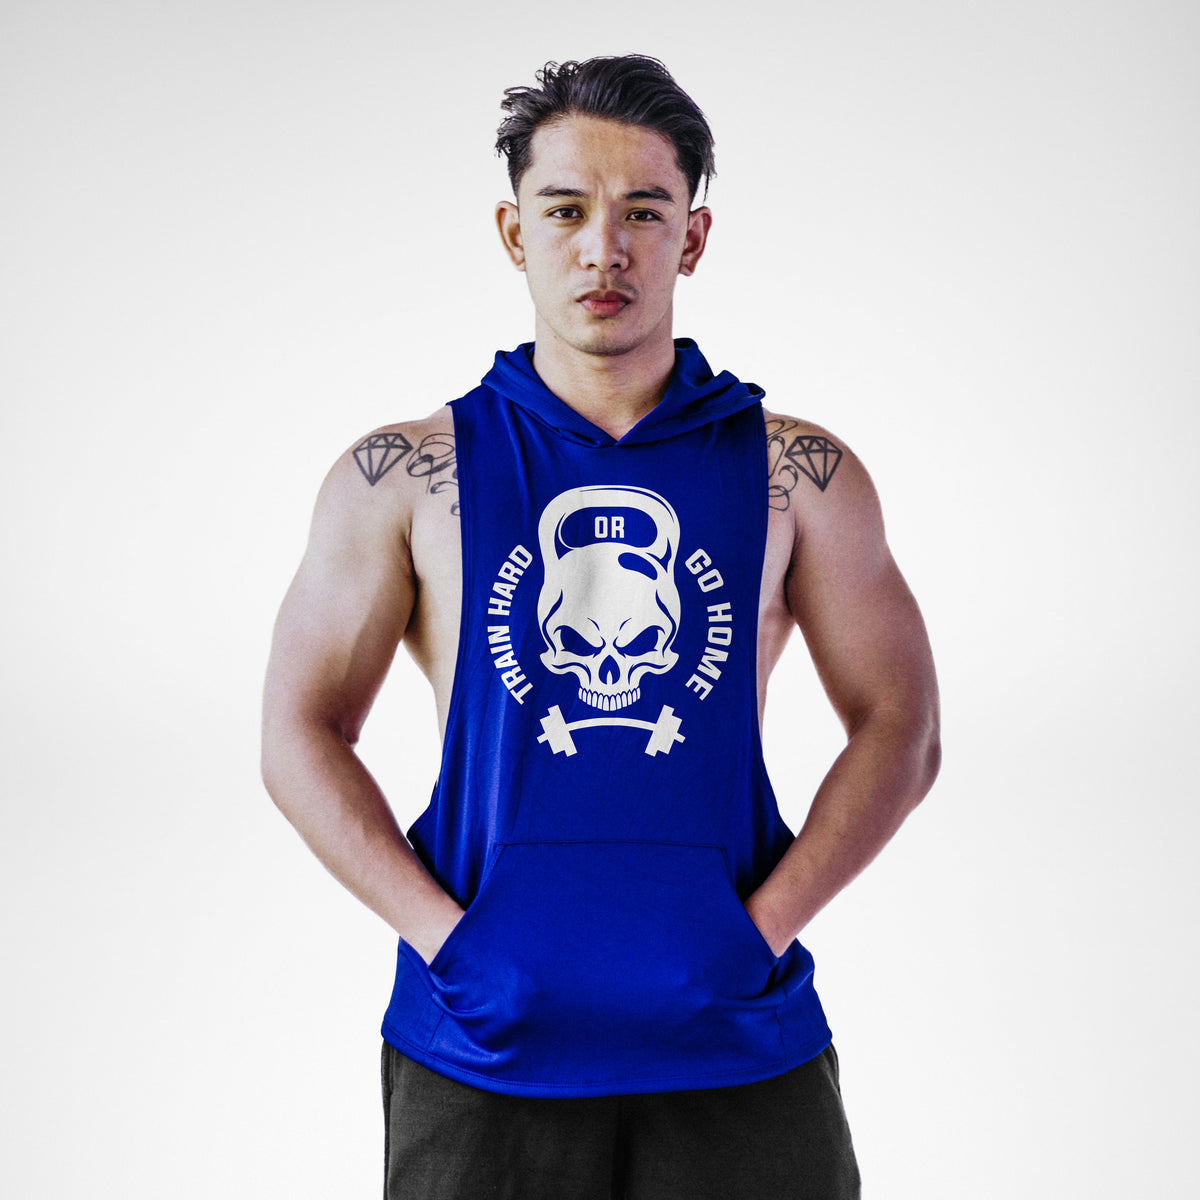 AH102 Train Hard or Go Home Sleeveless Hoodie